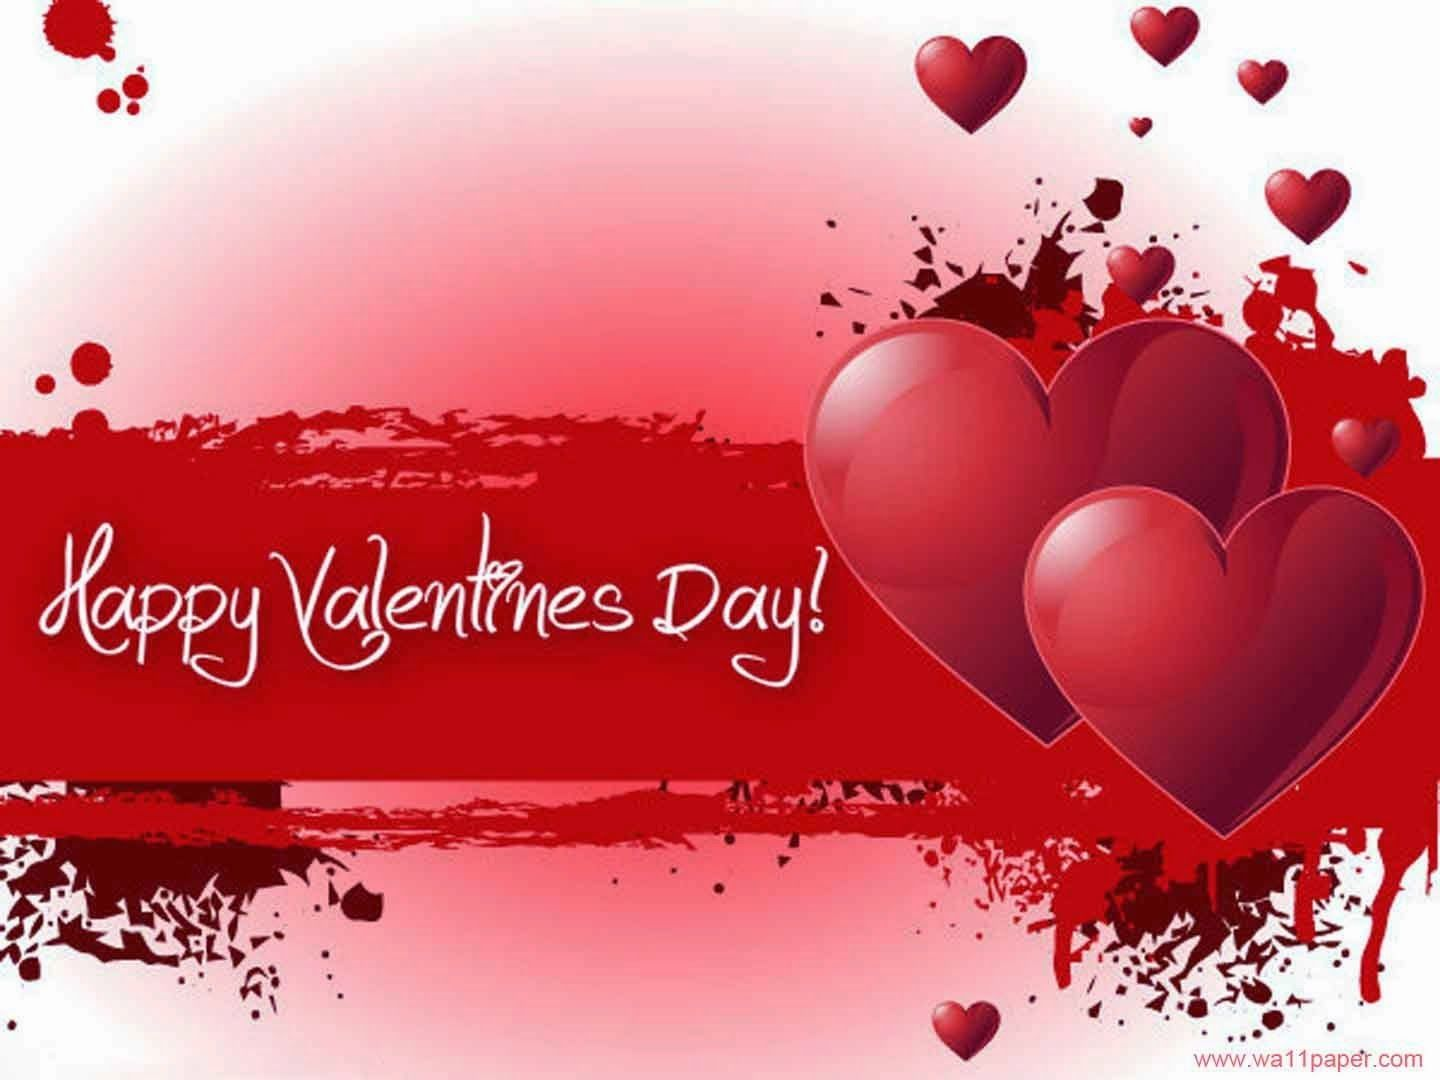 Facebook status for valentines day cute valentines day fb status facebook status for valentines day cute valentines day fb status 2017 funny status valentines biocorpaavc